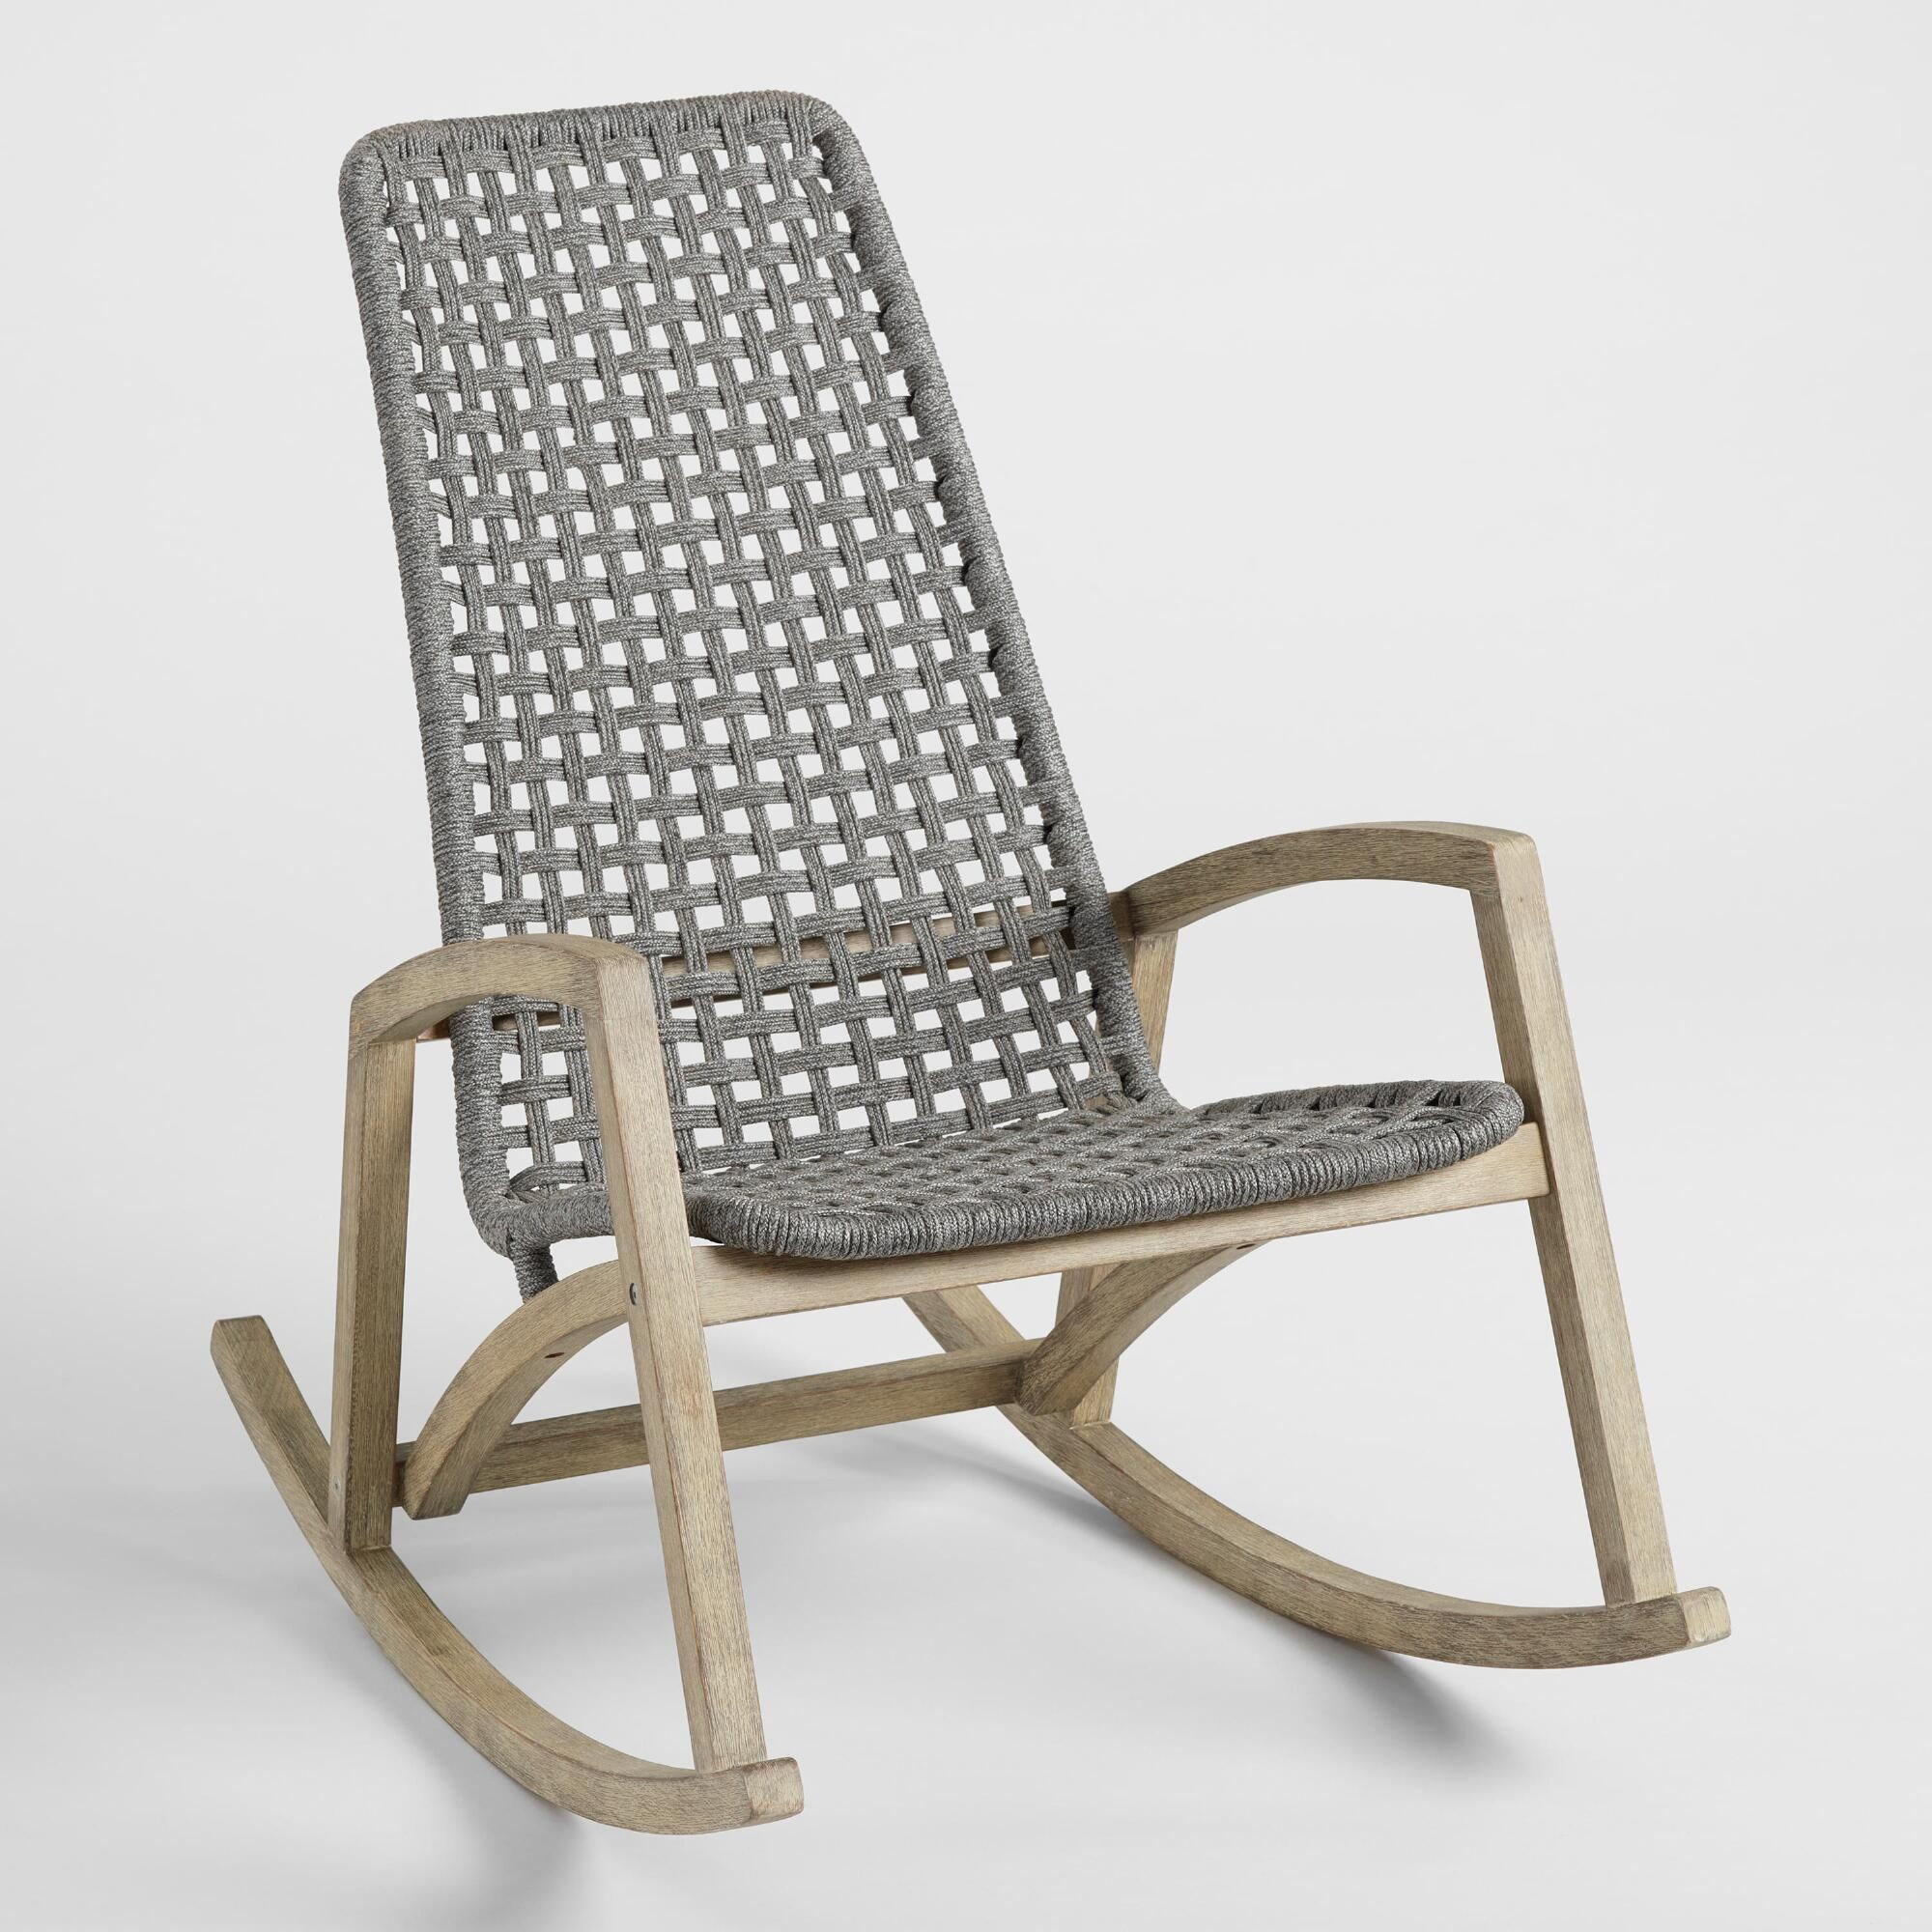 quality design 142a7 eaa17 Gray Nautical Rope Rapallo Outdoor Patio Rocking Chair by ...